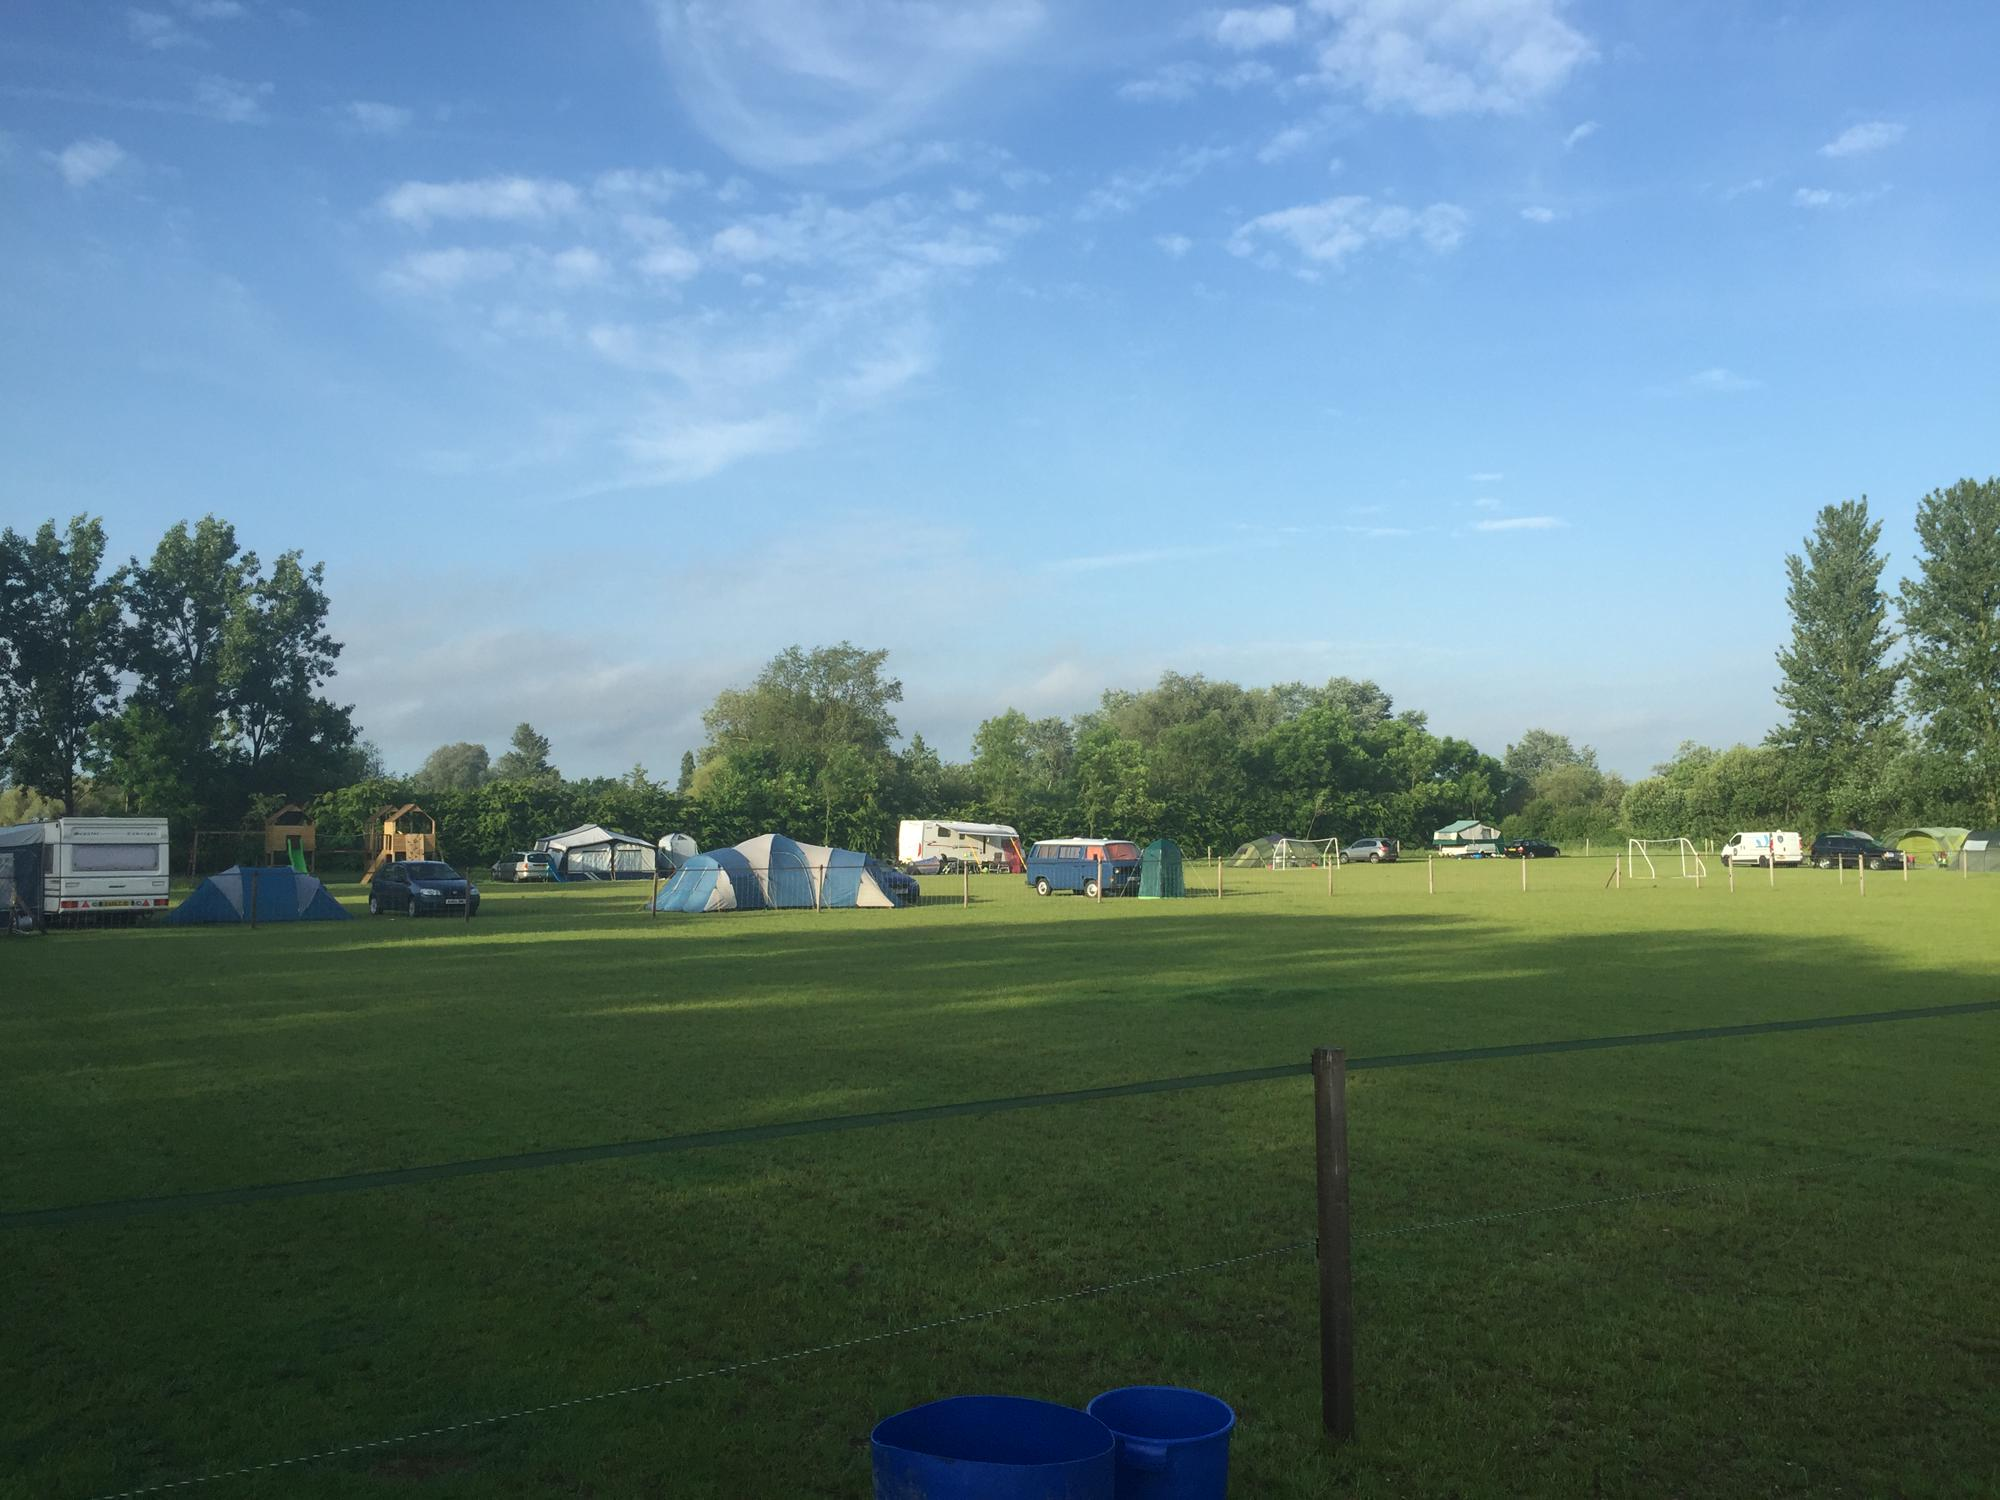 Chelmsford Camping | Campsites Near Chelmsford, Essex